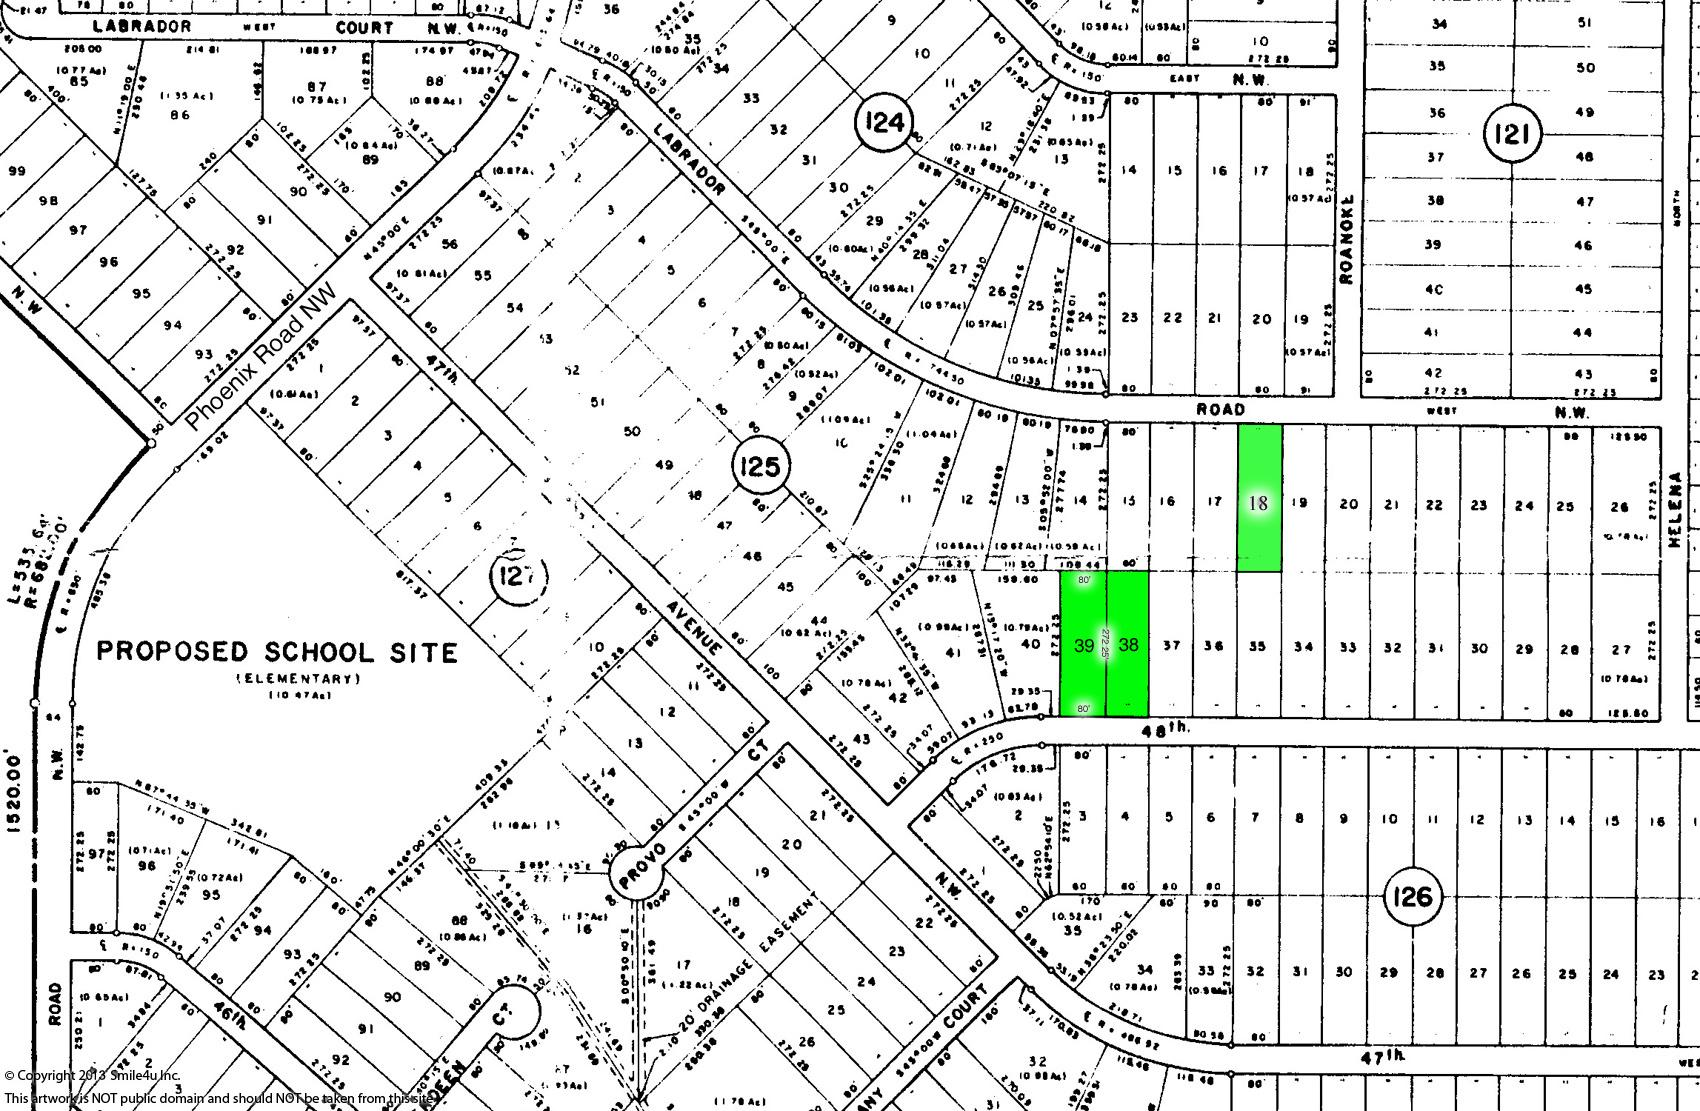 Cultivate Waltham Forests Food Festival as well Maps Us1 also My Little Pony Coloring Page 12 further Default asp f Listing details listingid 206616 in addition University of Wisconsin E2 80 93Madison. on land acres